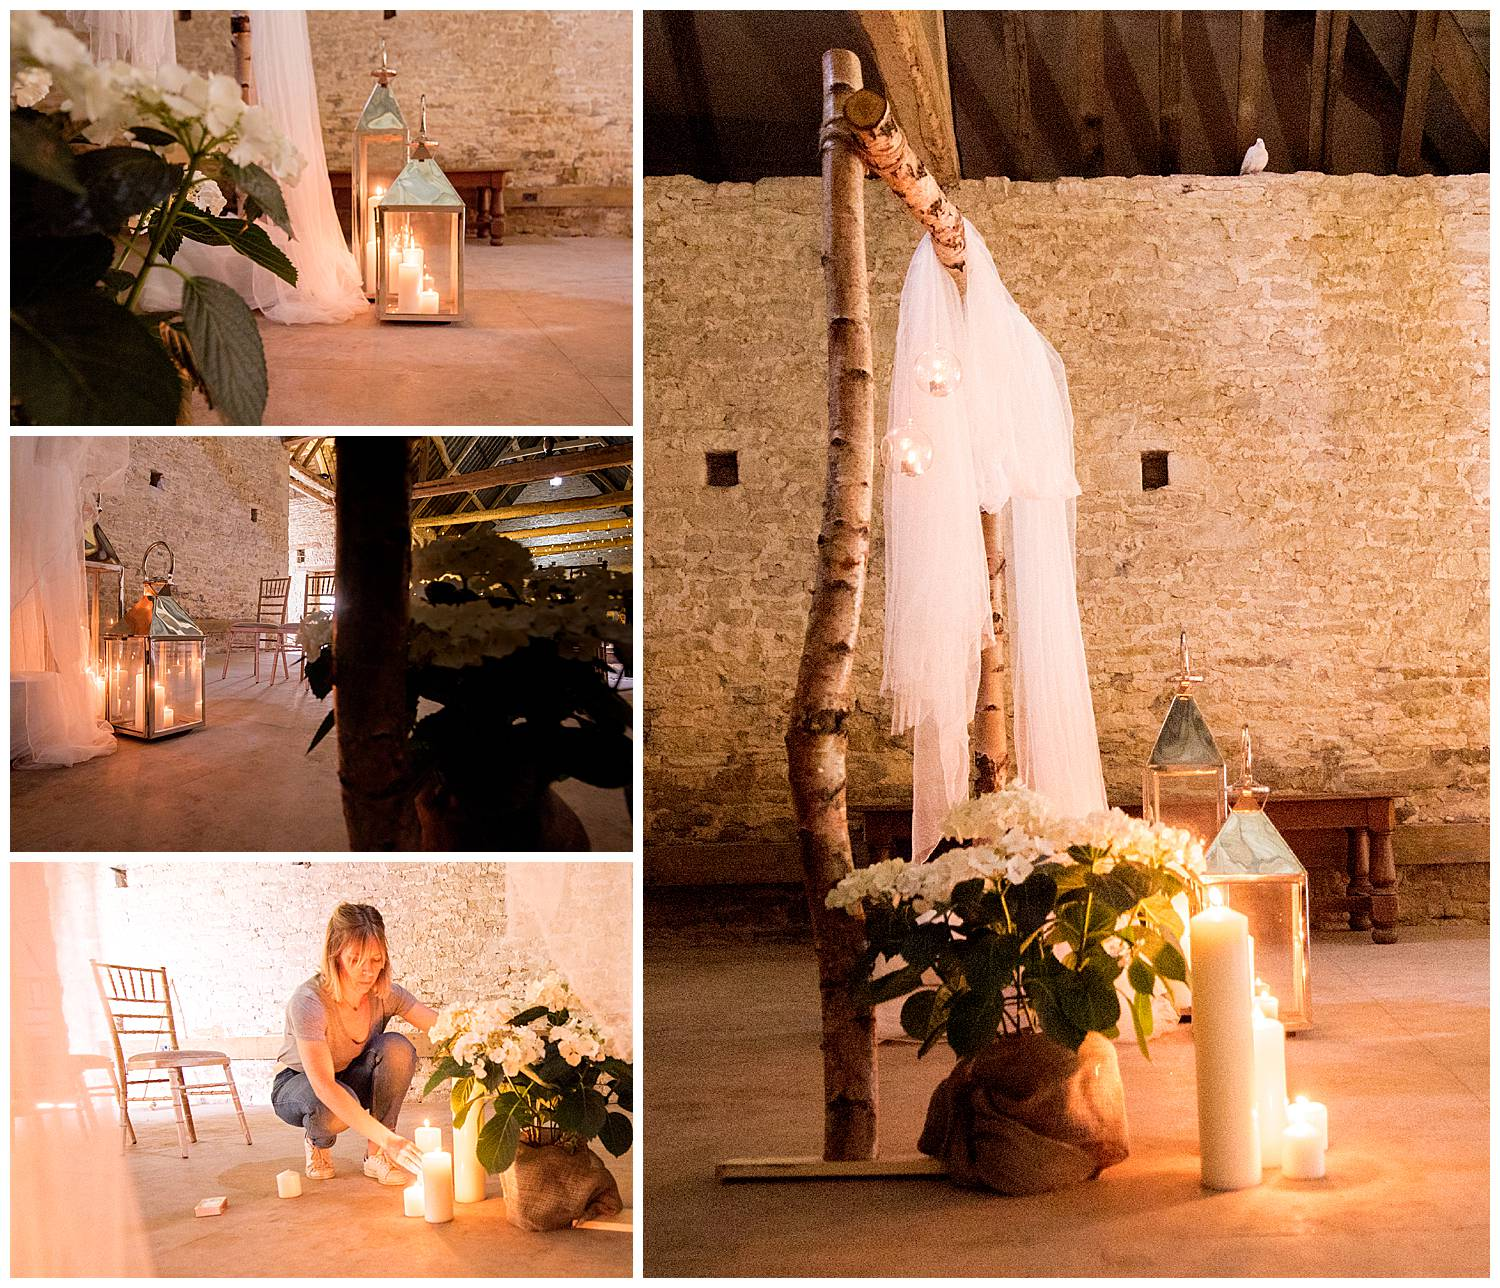 Candlelit wedding venue